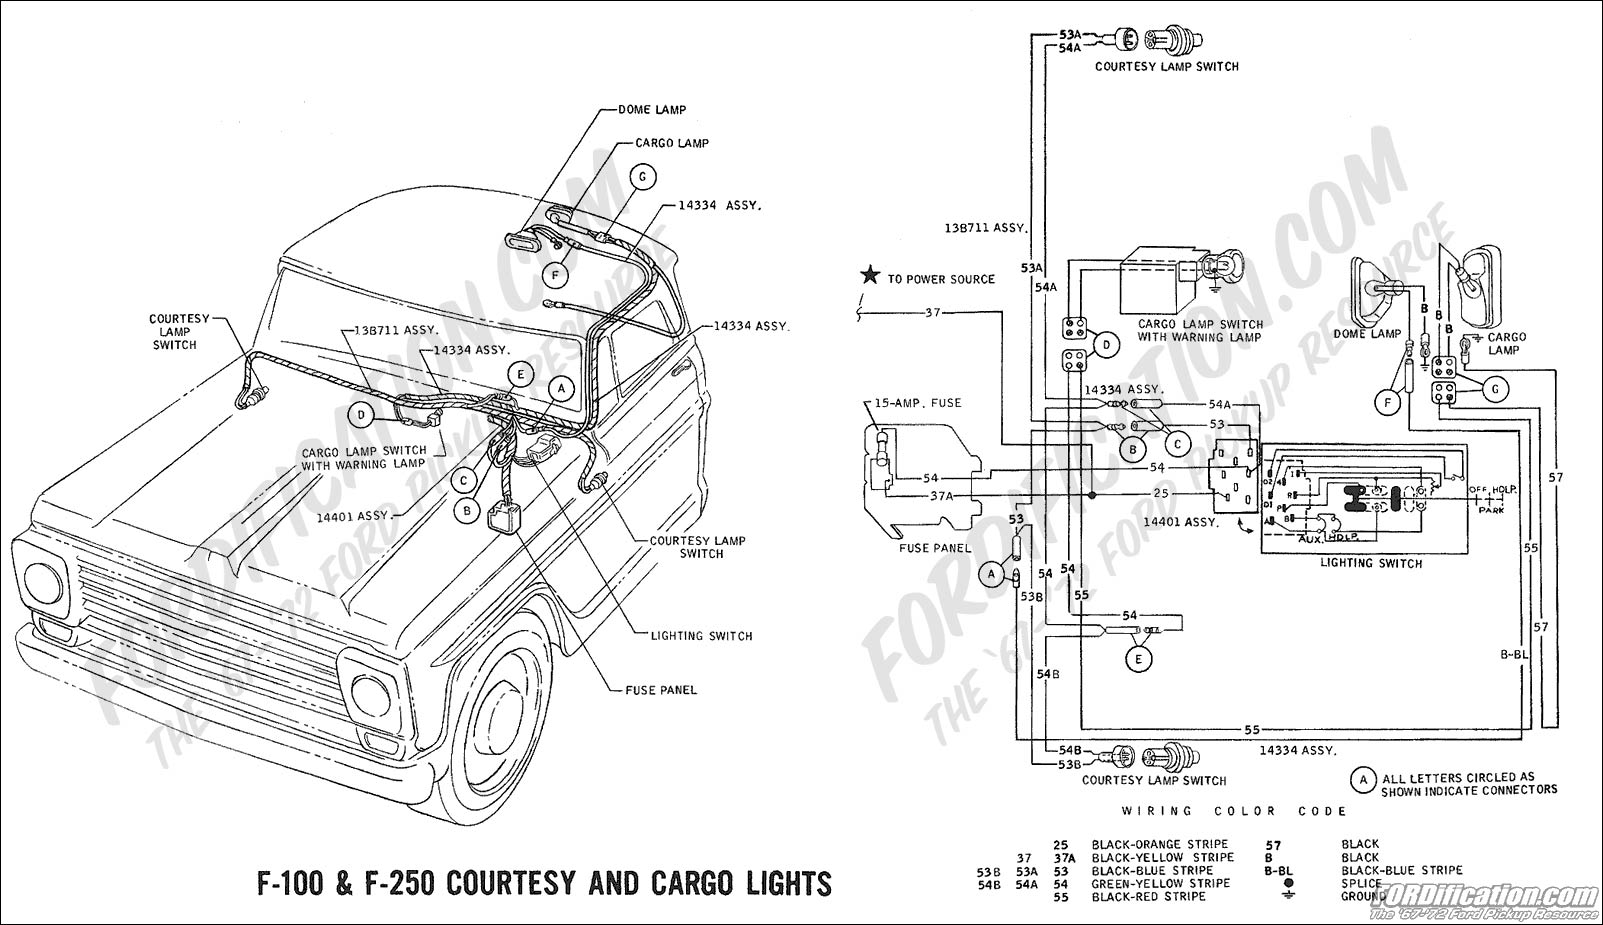 hight resolution of 1969 ford f 250 wiring diagram wiring diagram third level 1979 ford truck ignition switch wiring diagram 1964 ford f100 wiring harness